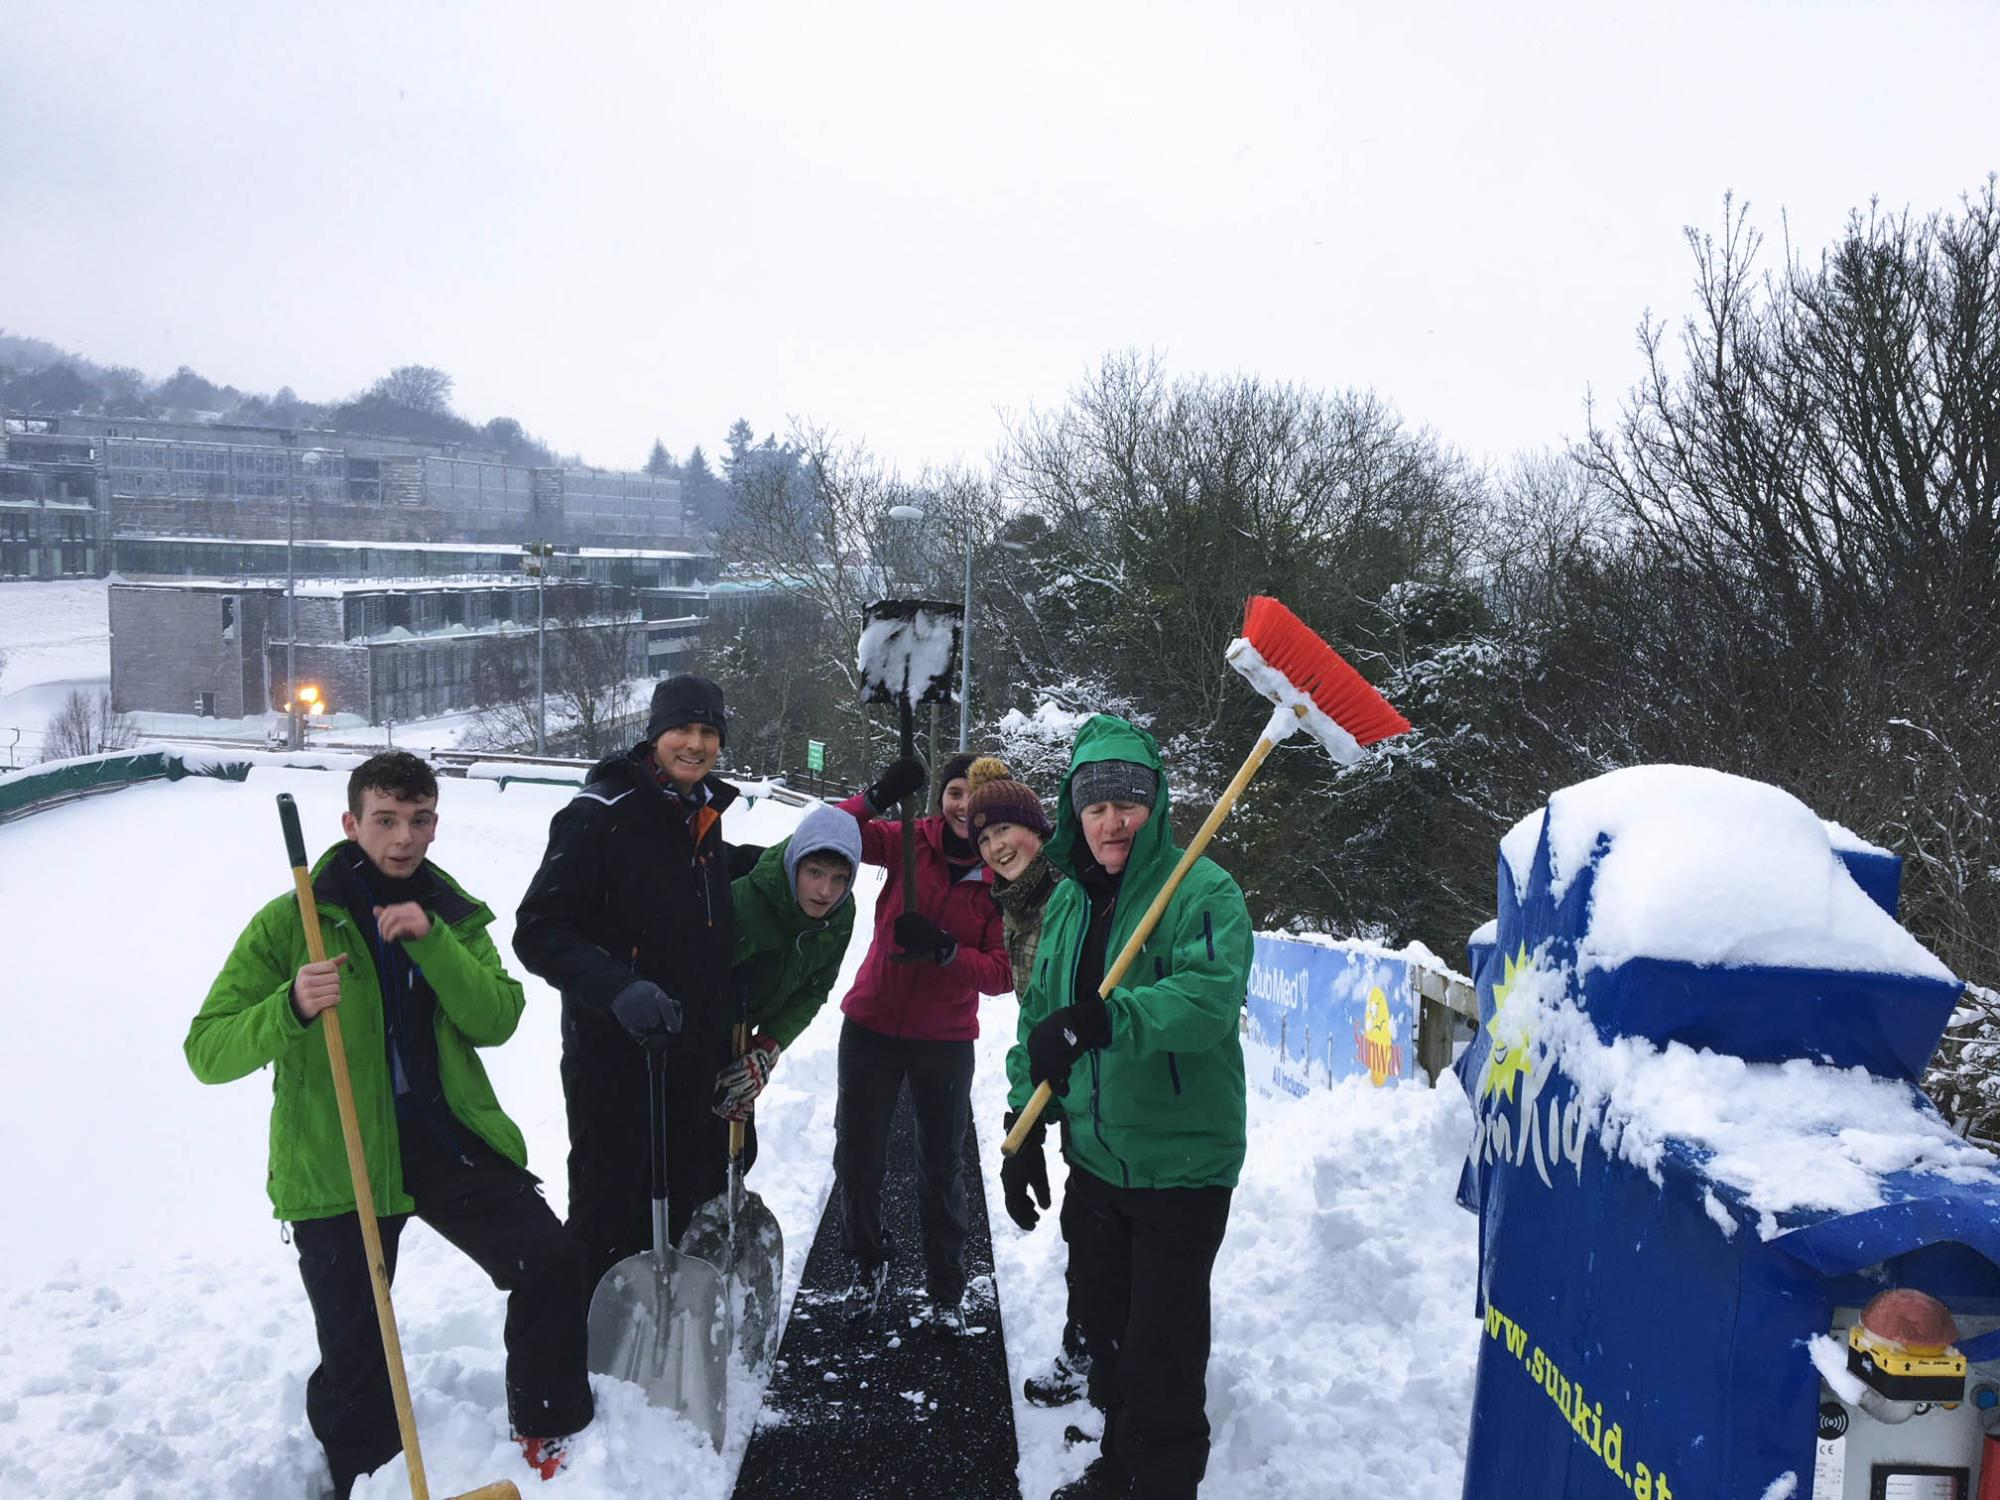 Hard at work clearing the snow